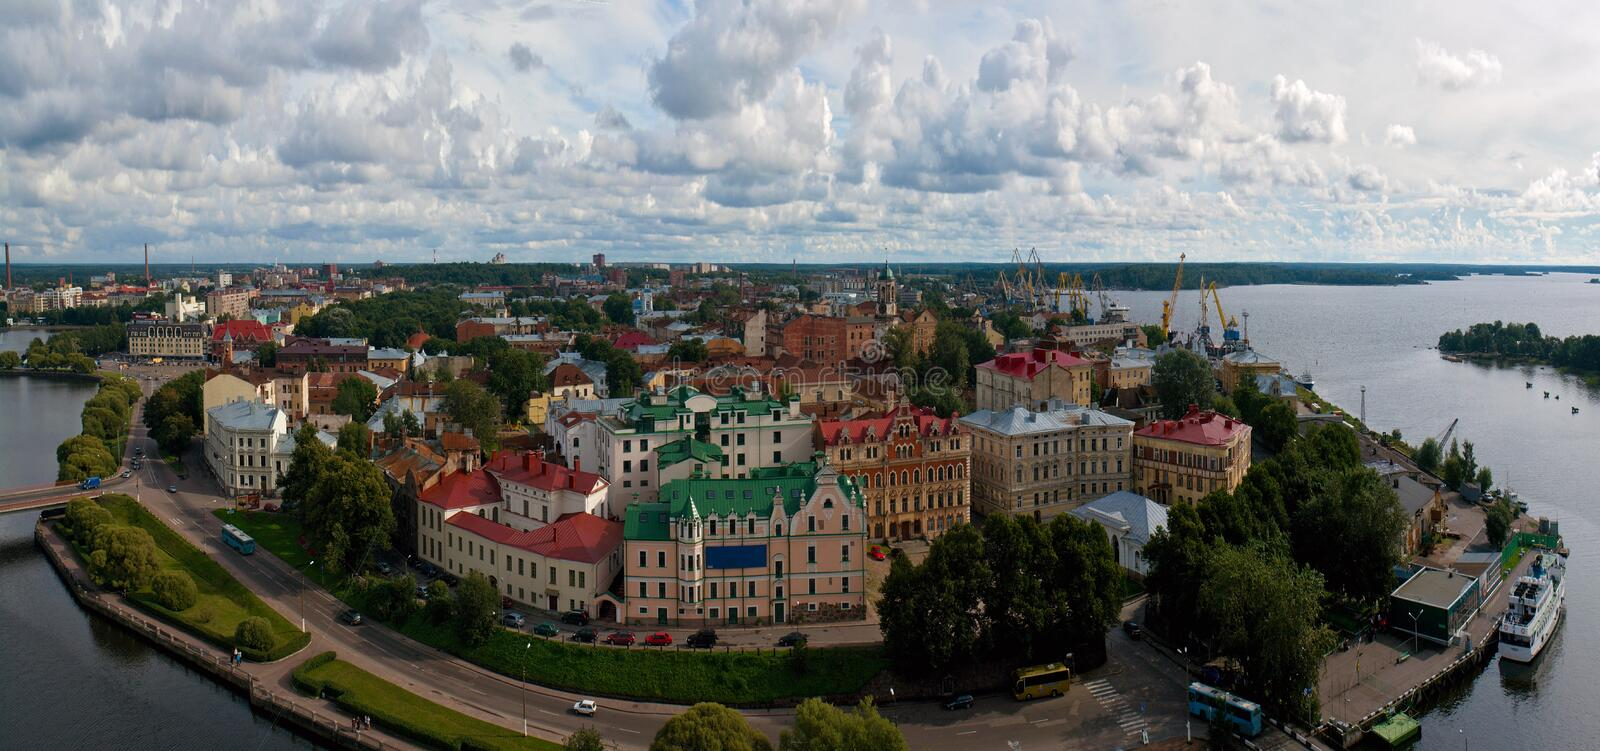 Panorama. View of the city of Vyborg. Leningrad region. Russia. royalty free stock images